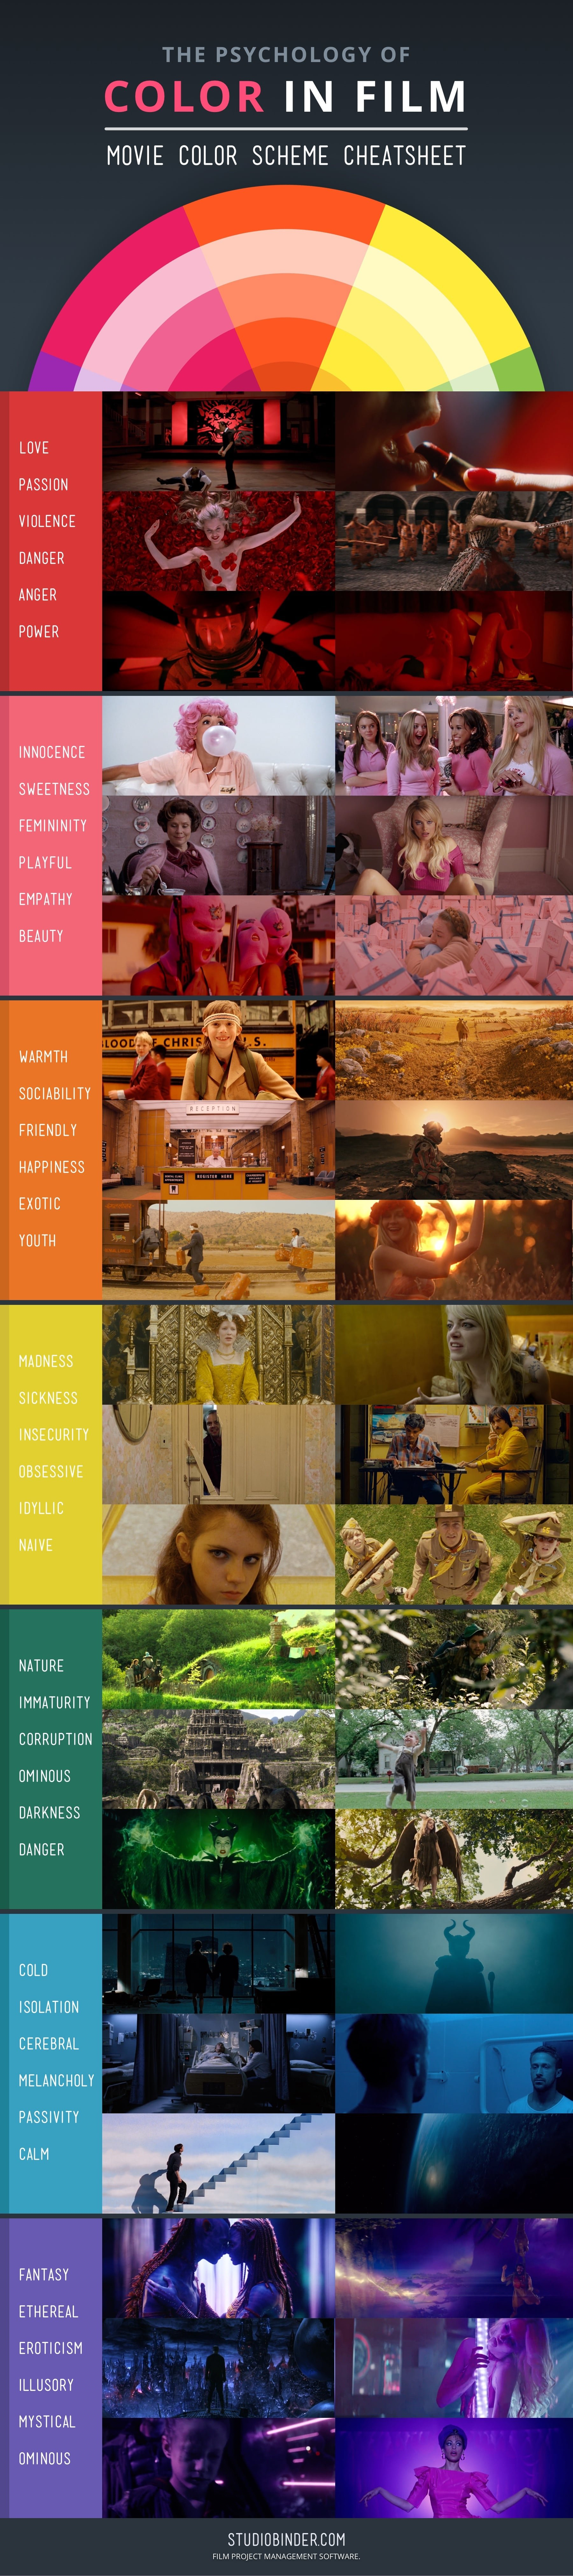 Psychology of Color in Movies